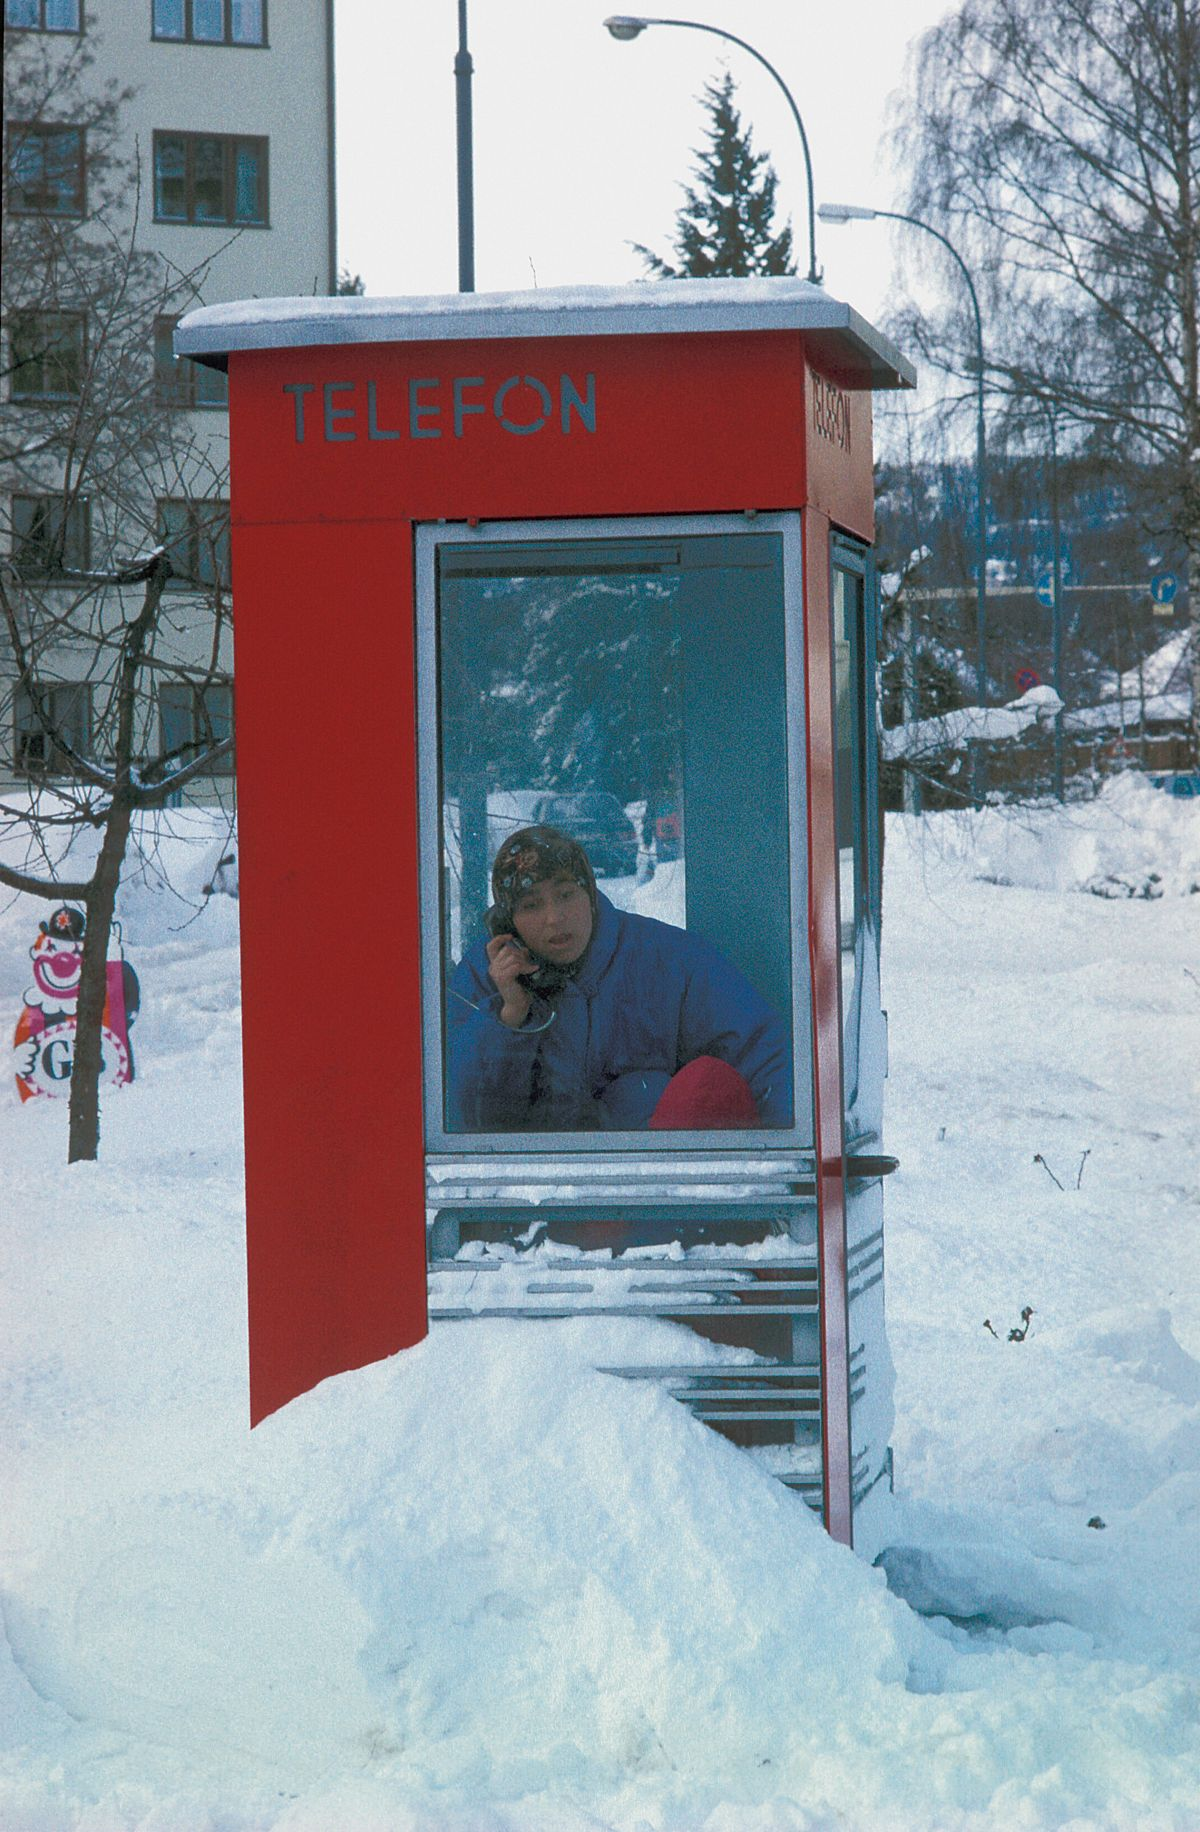 A phone booth at Sandaker, Oslo.